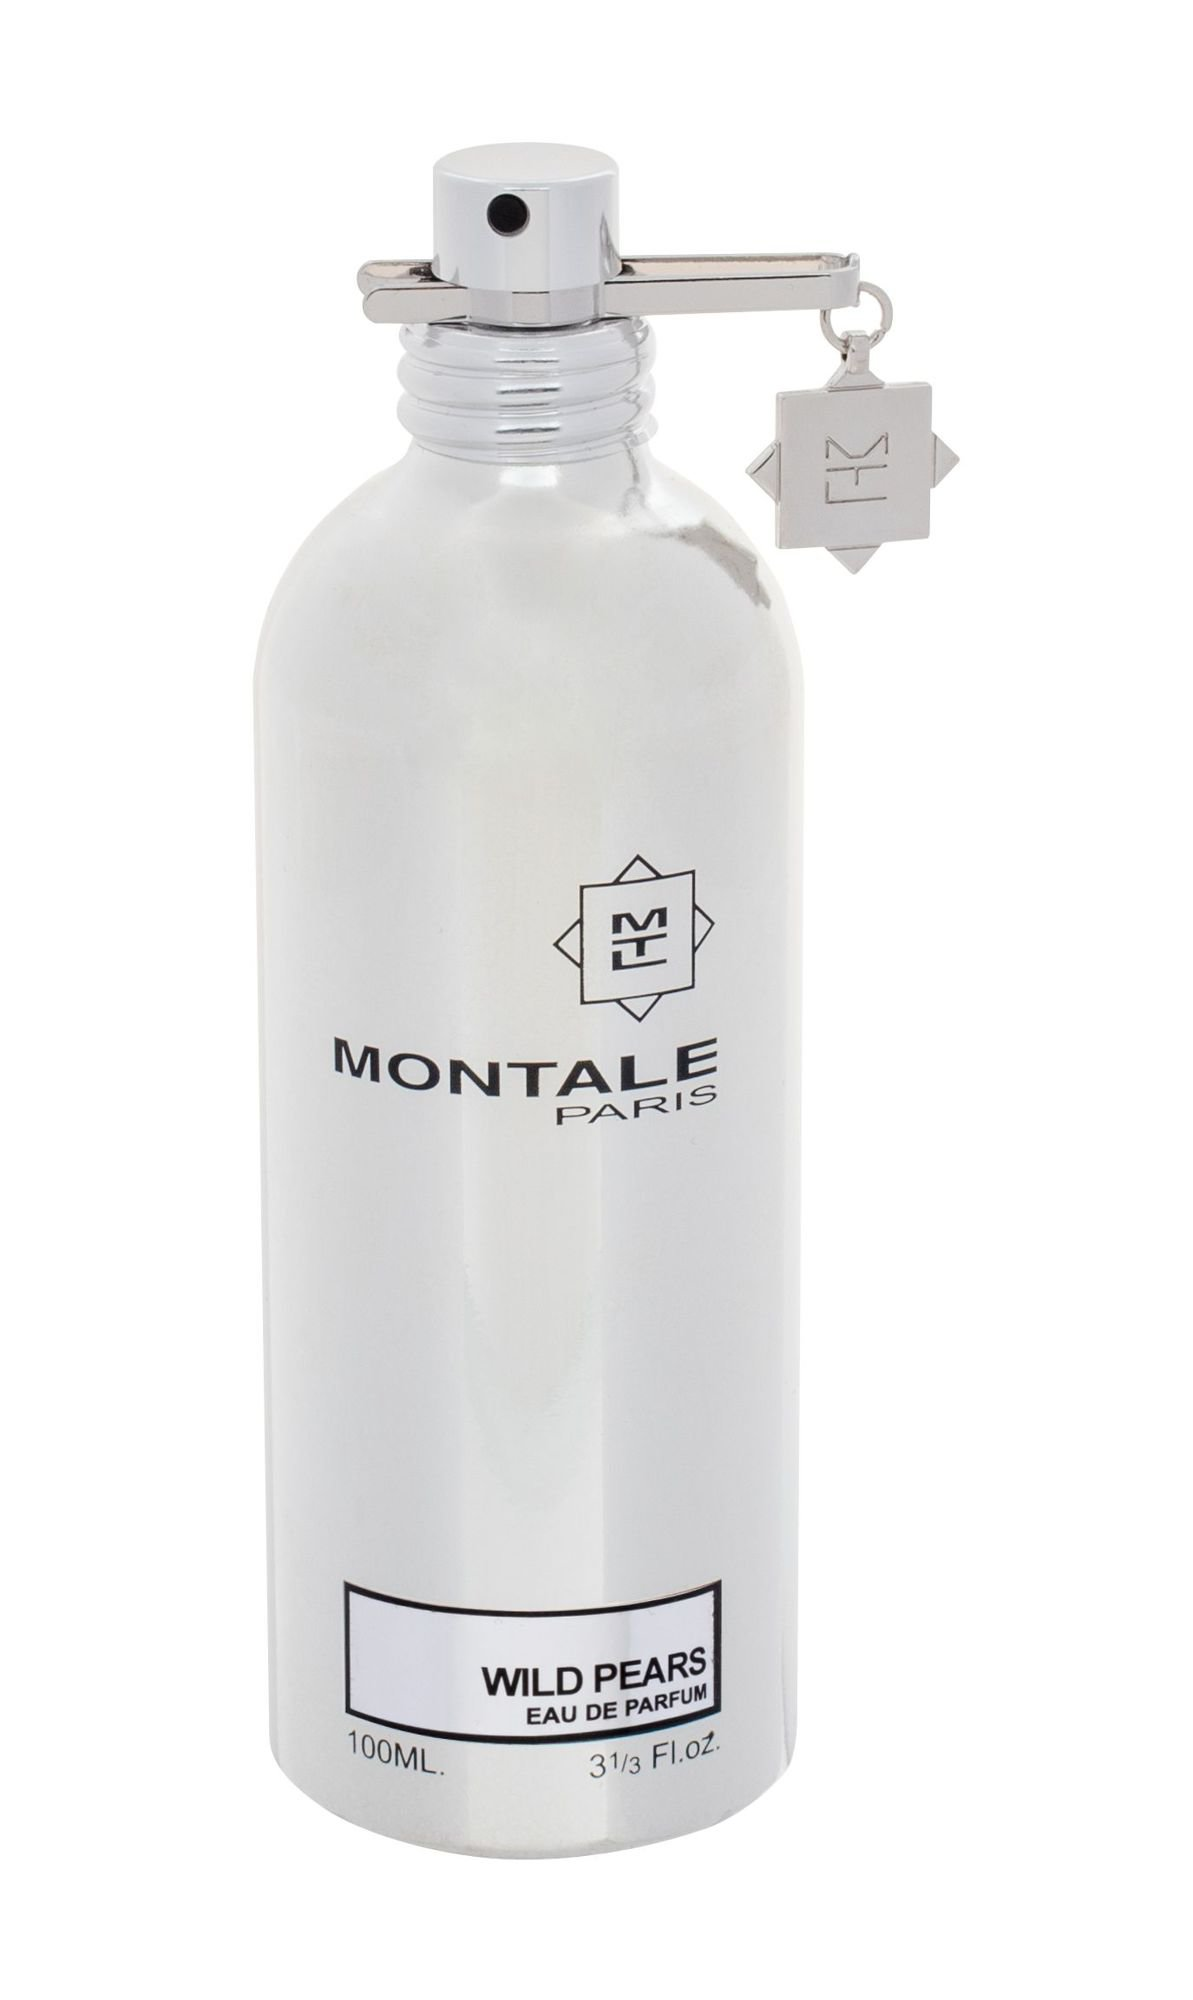 Montale Paris Wild Pears, edp 100ml